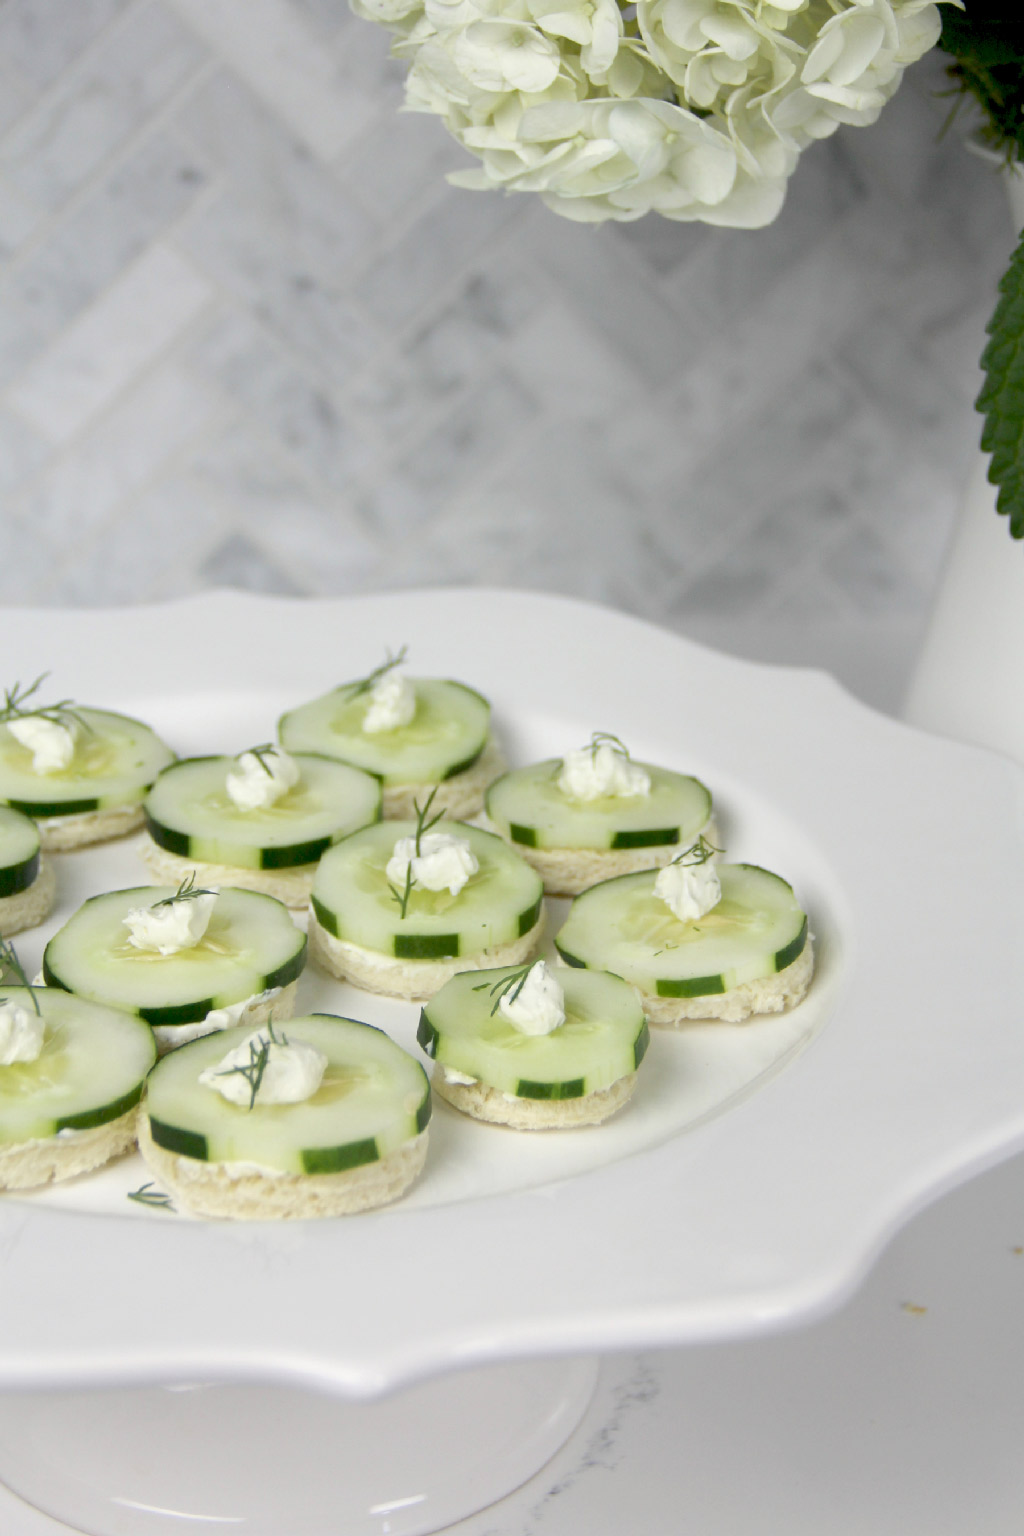 Easy cucumber tea sandwiches with cream cheese are a simple, classic appetizer!